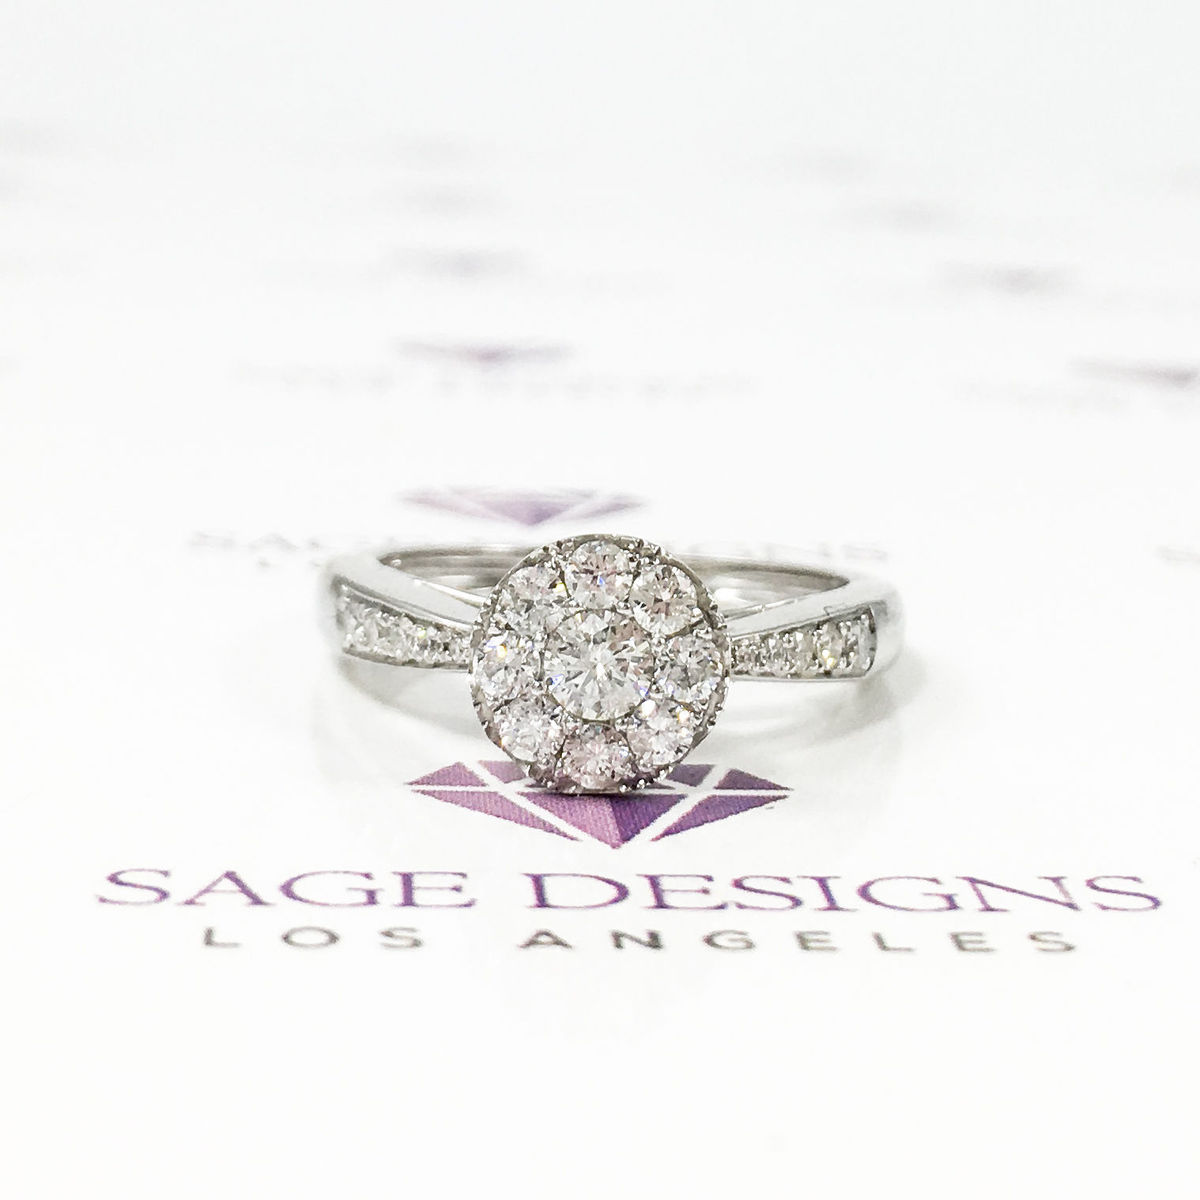 sage designs la international jewelry collection